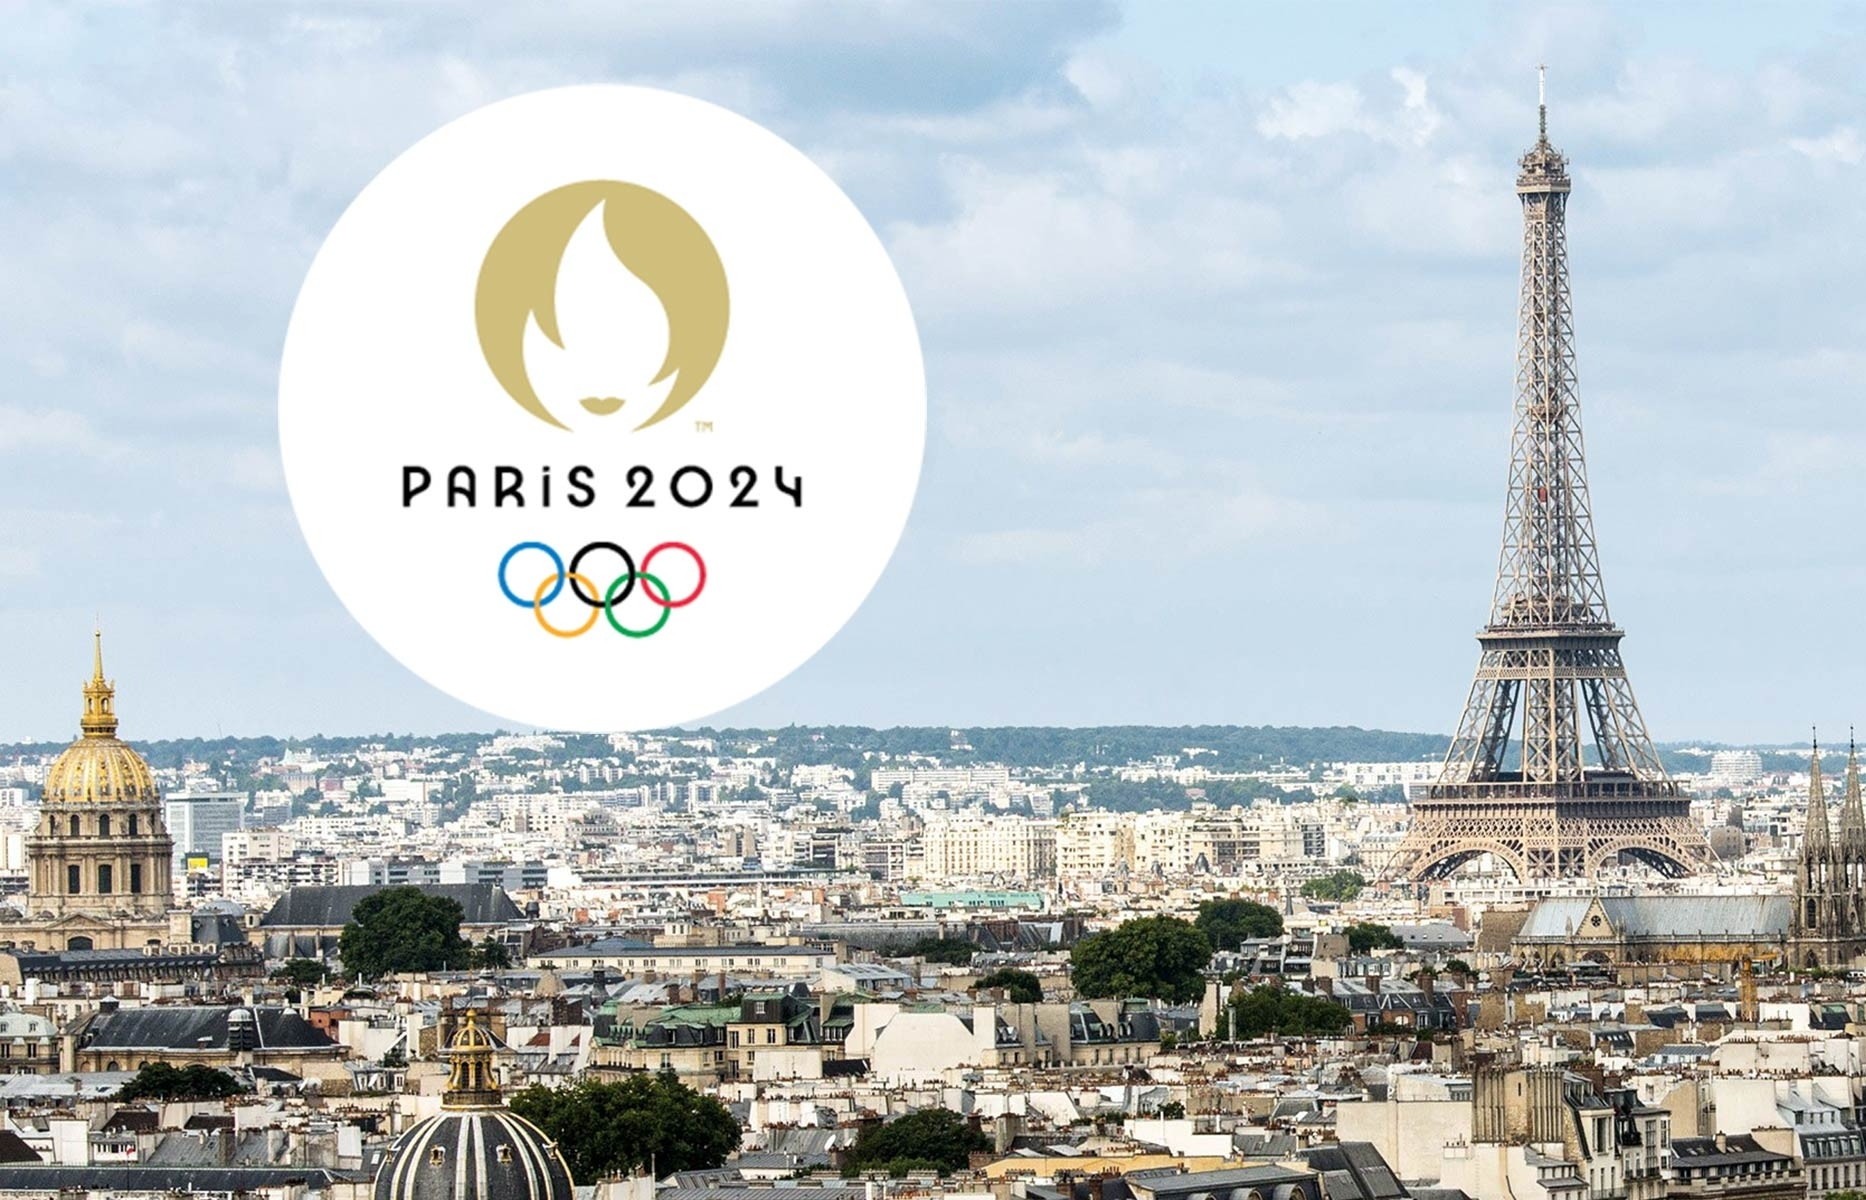 Paris 2024 - in the shadow of Tokyo but already hit by coronavirus